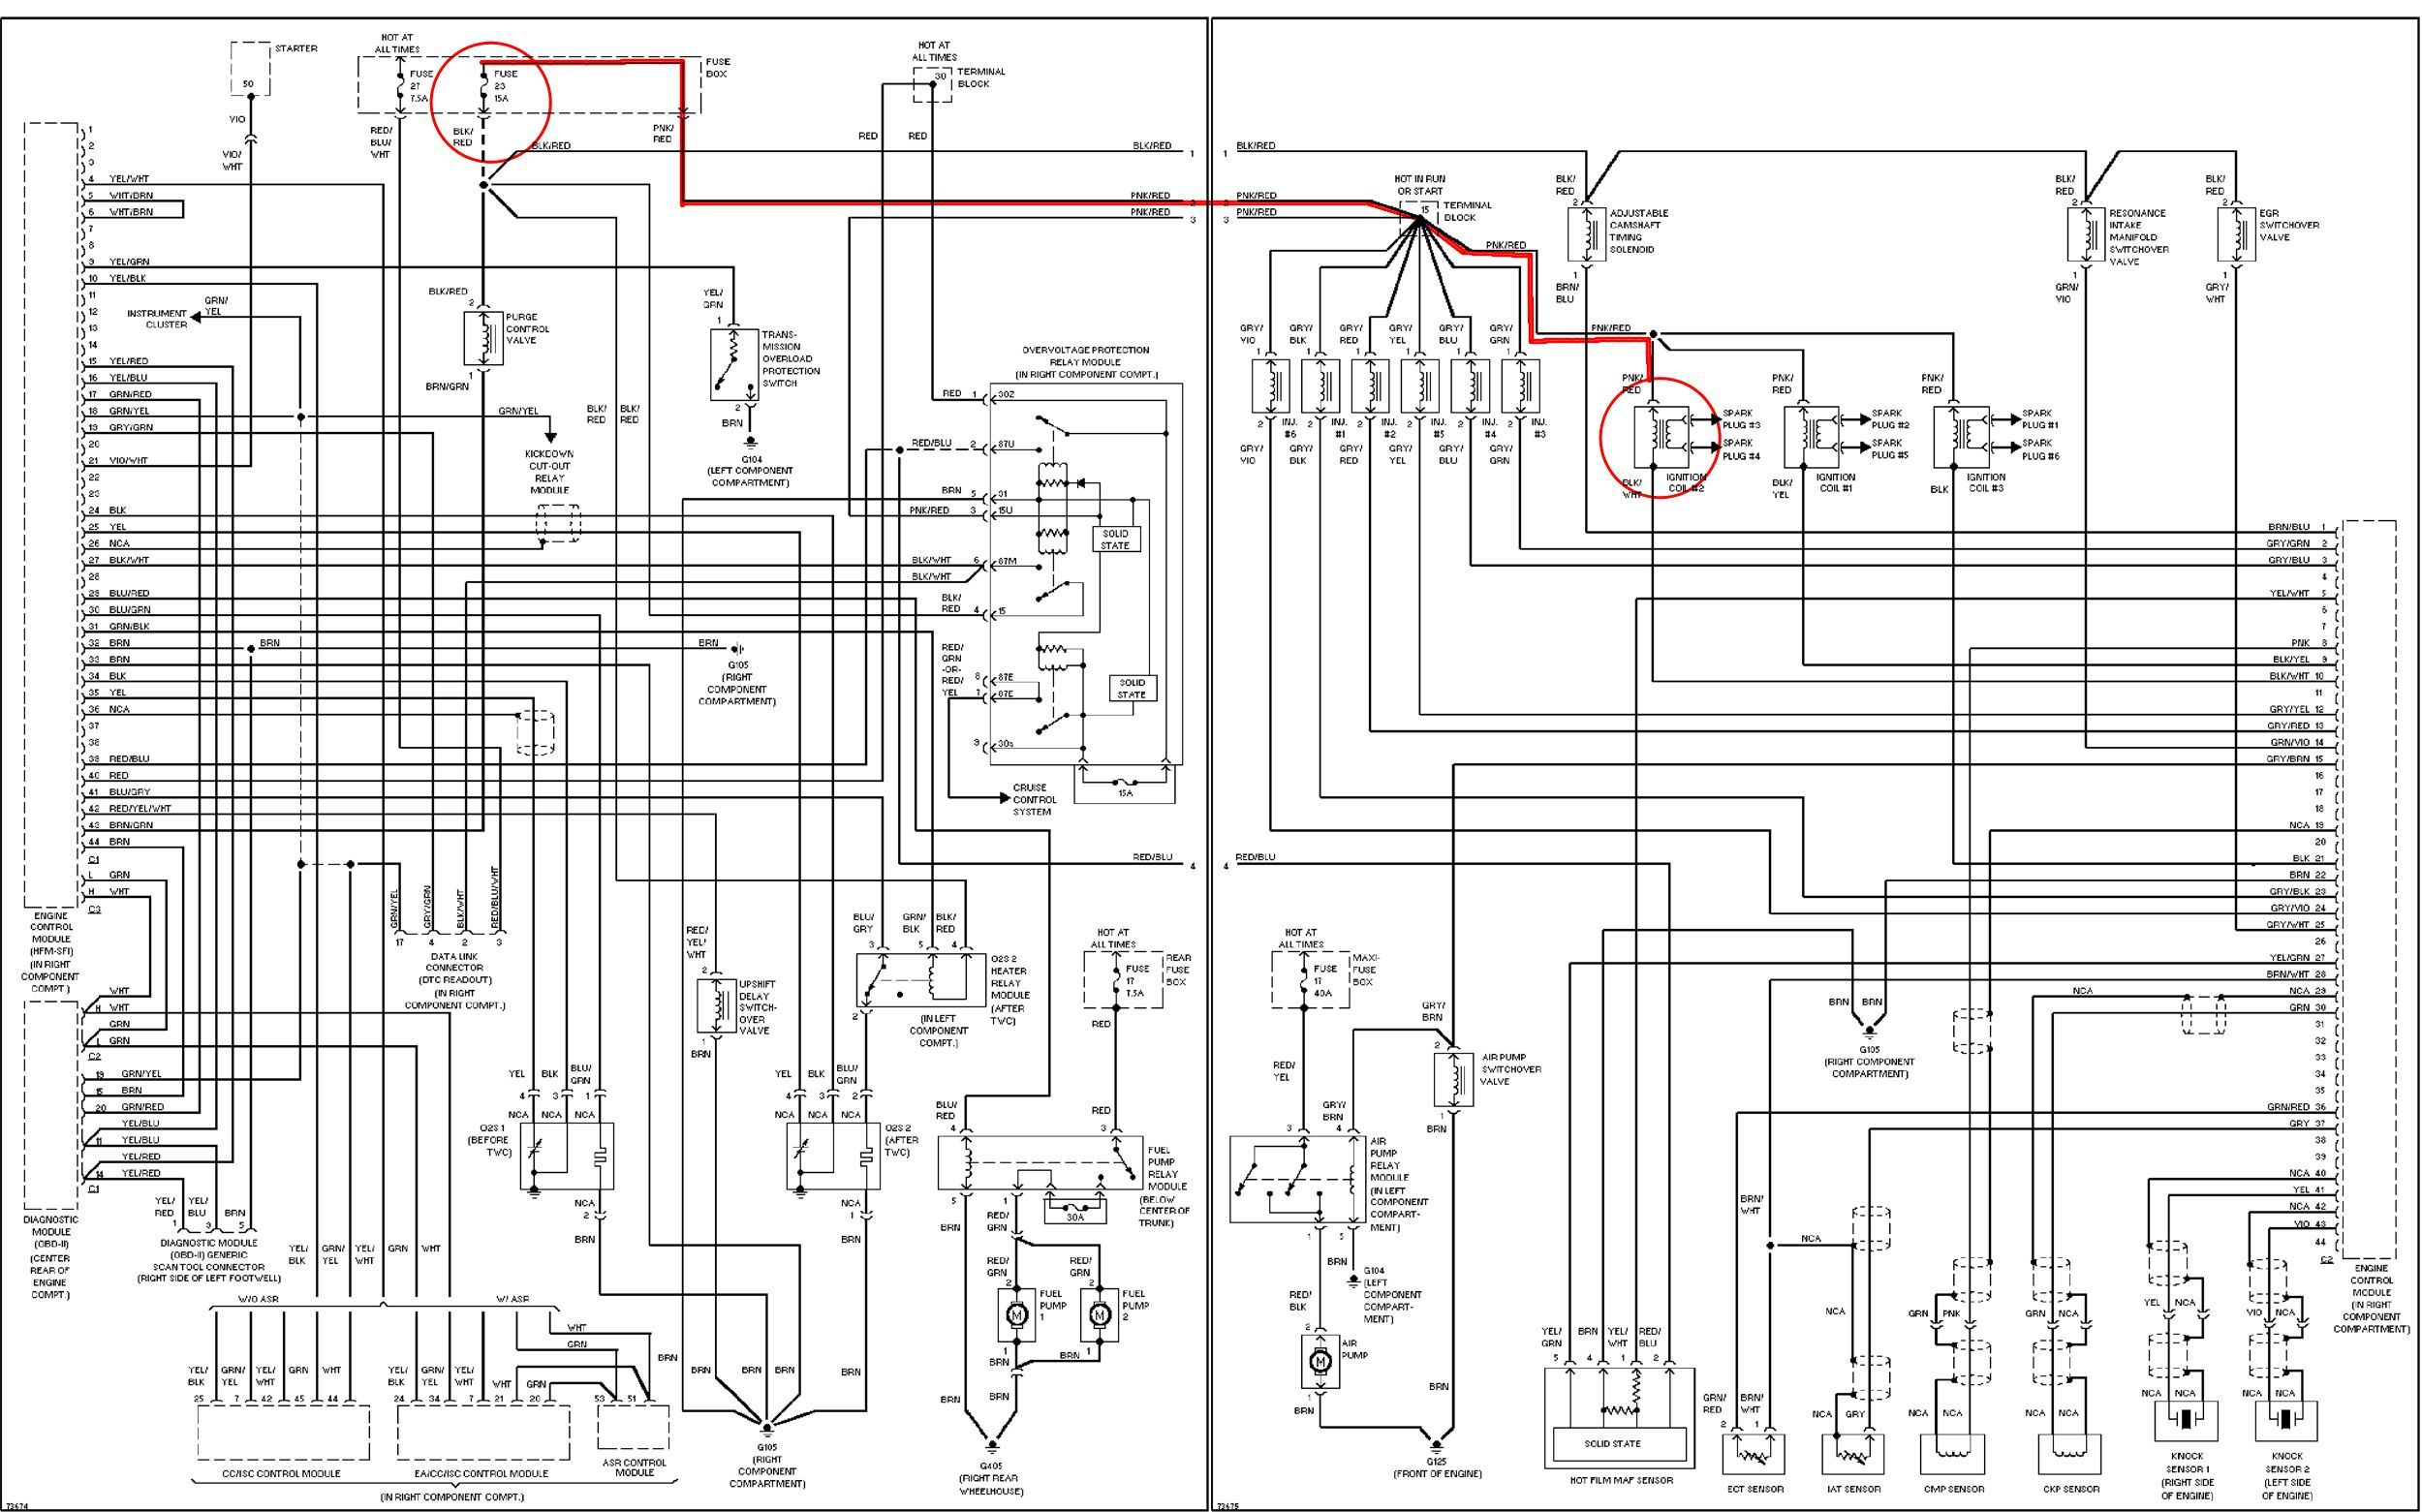 k1blm to mercedes benz wiring diagram  mercedes car